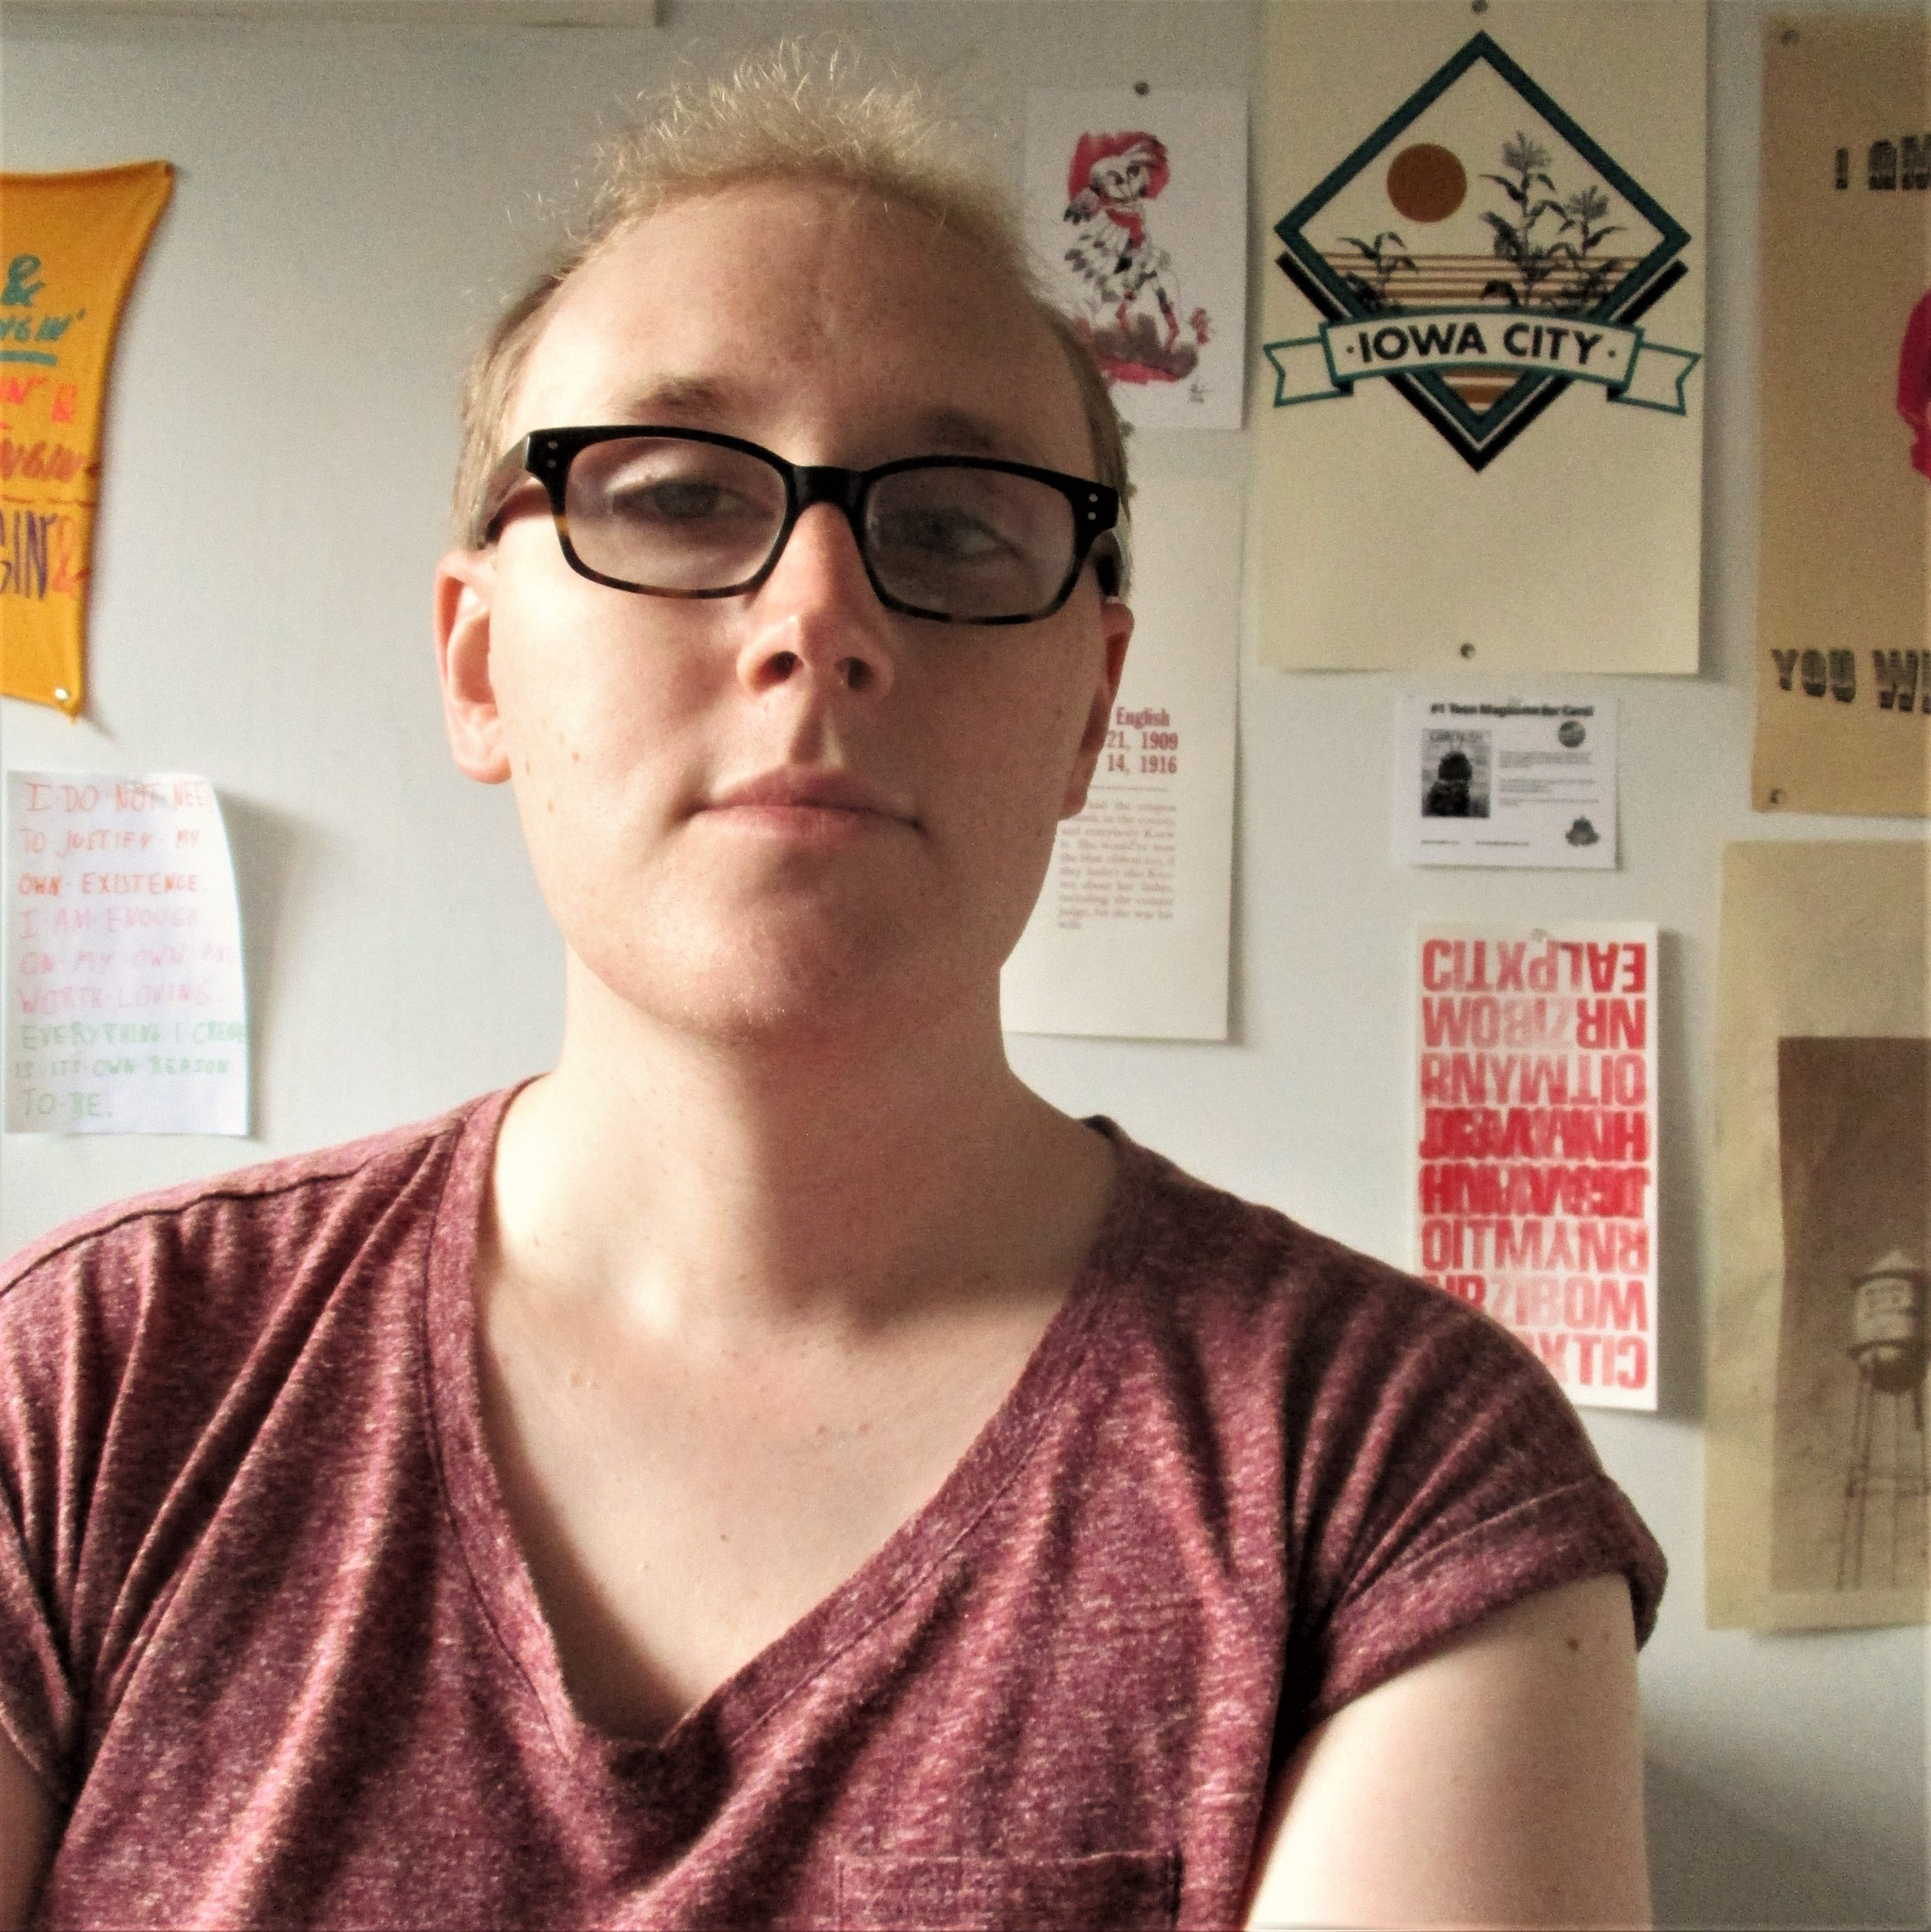 Violet Louisa Austerlitz  (she/her/hers) draws comics about personal identity and the soil in which it grows, using digital and traditional media. She frequently explores her own experience as a queer and trans person, both literally and through the medium of sentient dandelions.  She is ambivalent about her formal education (BA Theatre, Truman State University, 2011), but still loves learning new things, and recently completed Melanie Gillman's Graphic Memoir workshop at the Center for Cartoon Studies in Vermont (which was like BONKERS good, they're a wonderful teacher).  She is based in Iowa City, IA, and self-publishes her own comics and zines. She is also a long-standing member of the Iowa City Press Co-Op, a community printmaking studio.  Here are some very good webcomics by queer and trans folks that you would do well to investigate:   As The Crow Flies  , by Melanie Gillman   On a Sunbeam  , by Tillie Walden   Goodbye to Halos  , by Valerie Halla